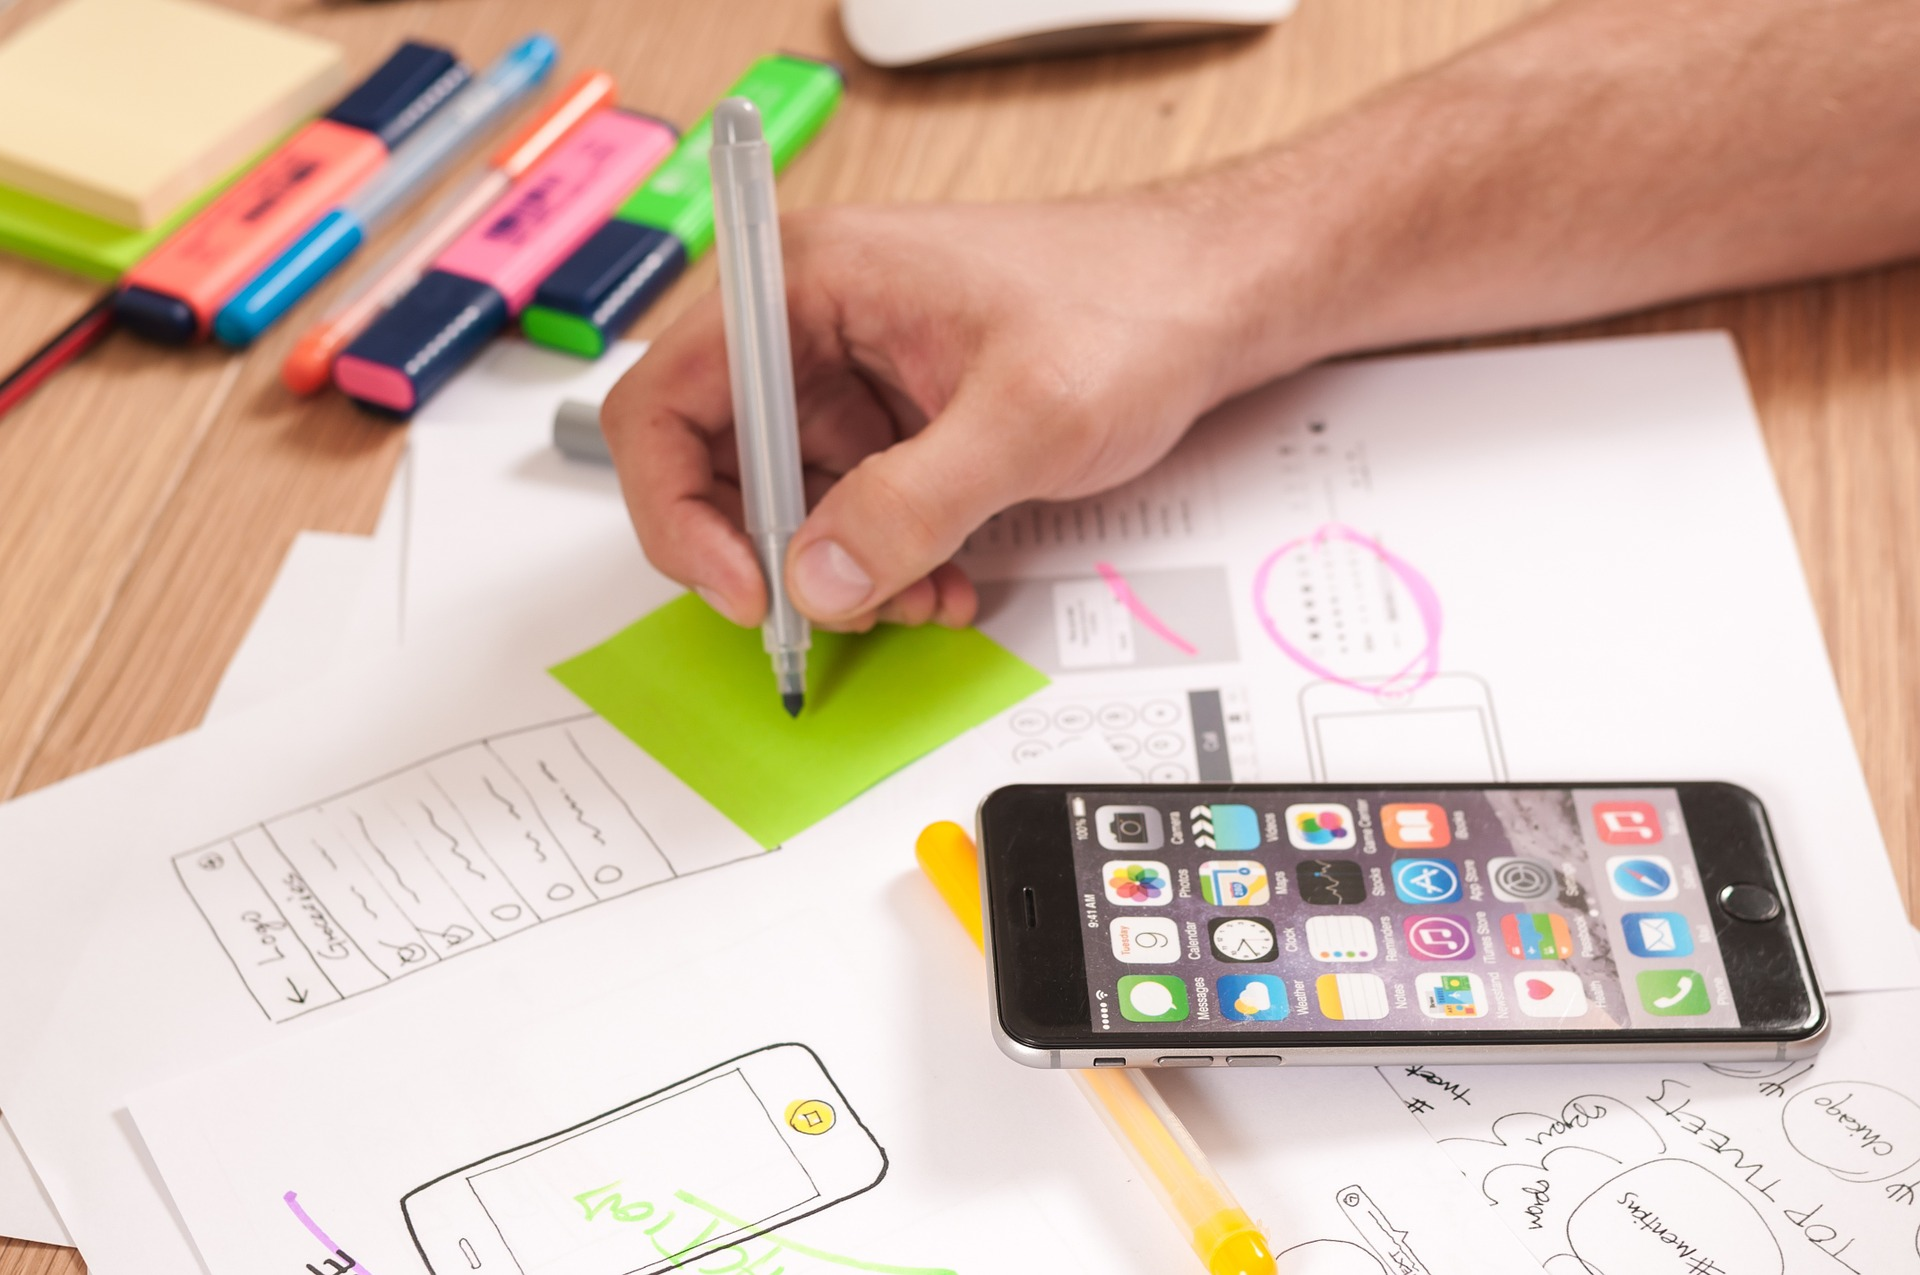 14 Reasons Why Investing in App Development Can Boost Your Start-Up